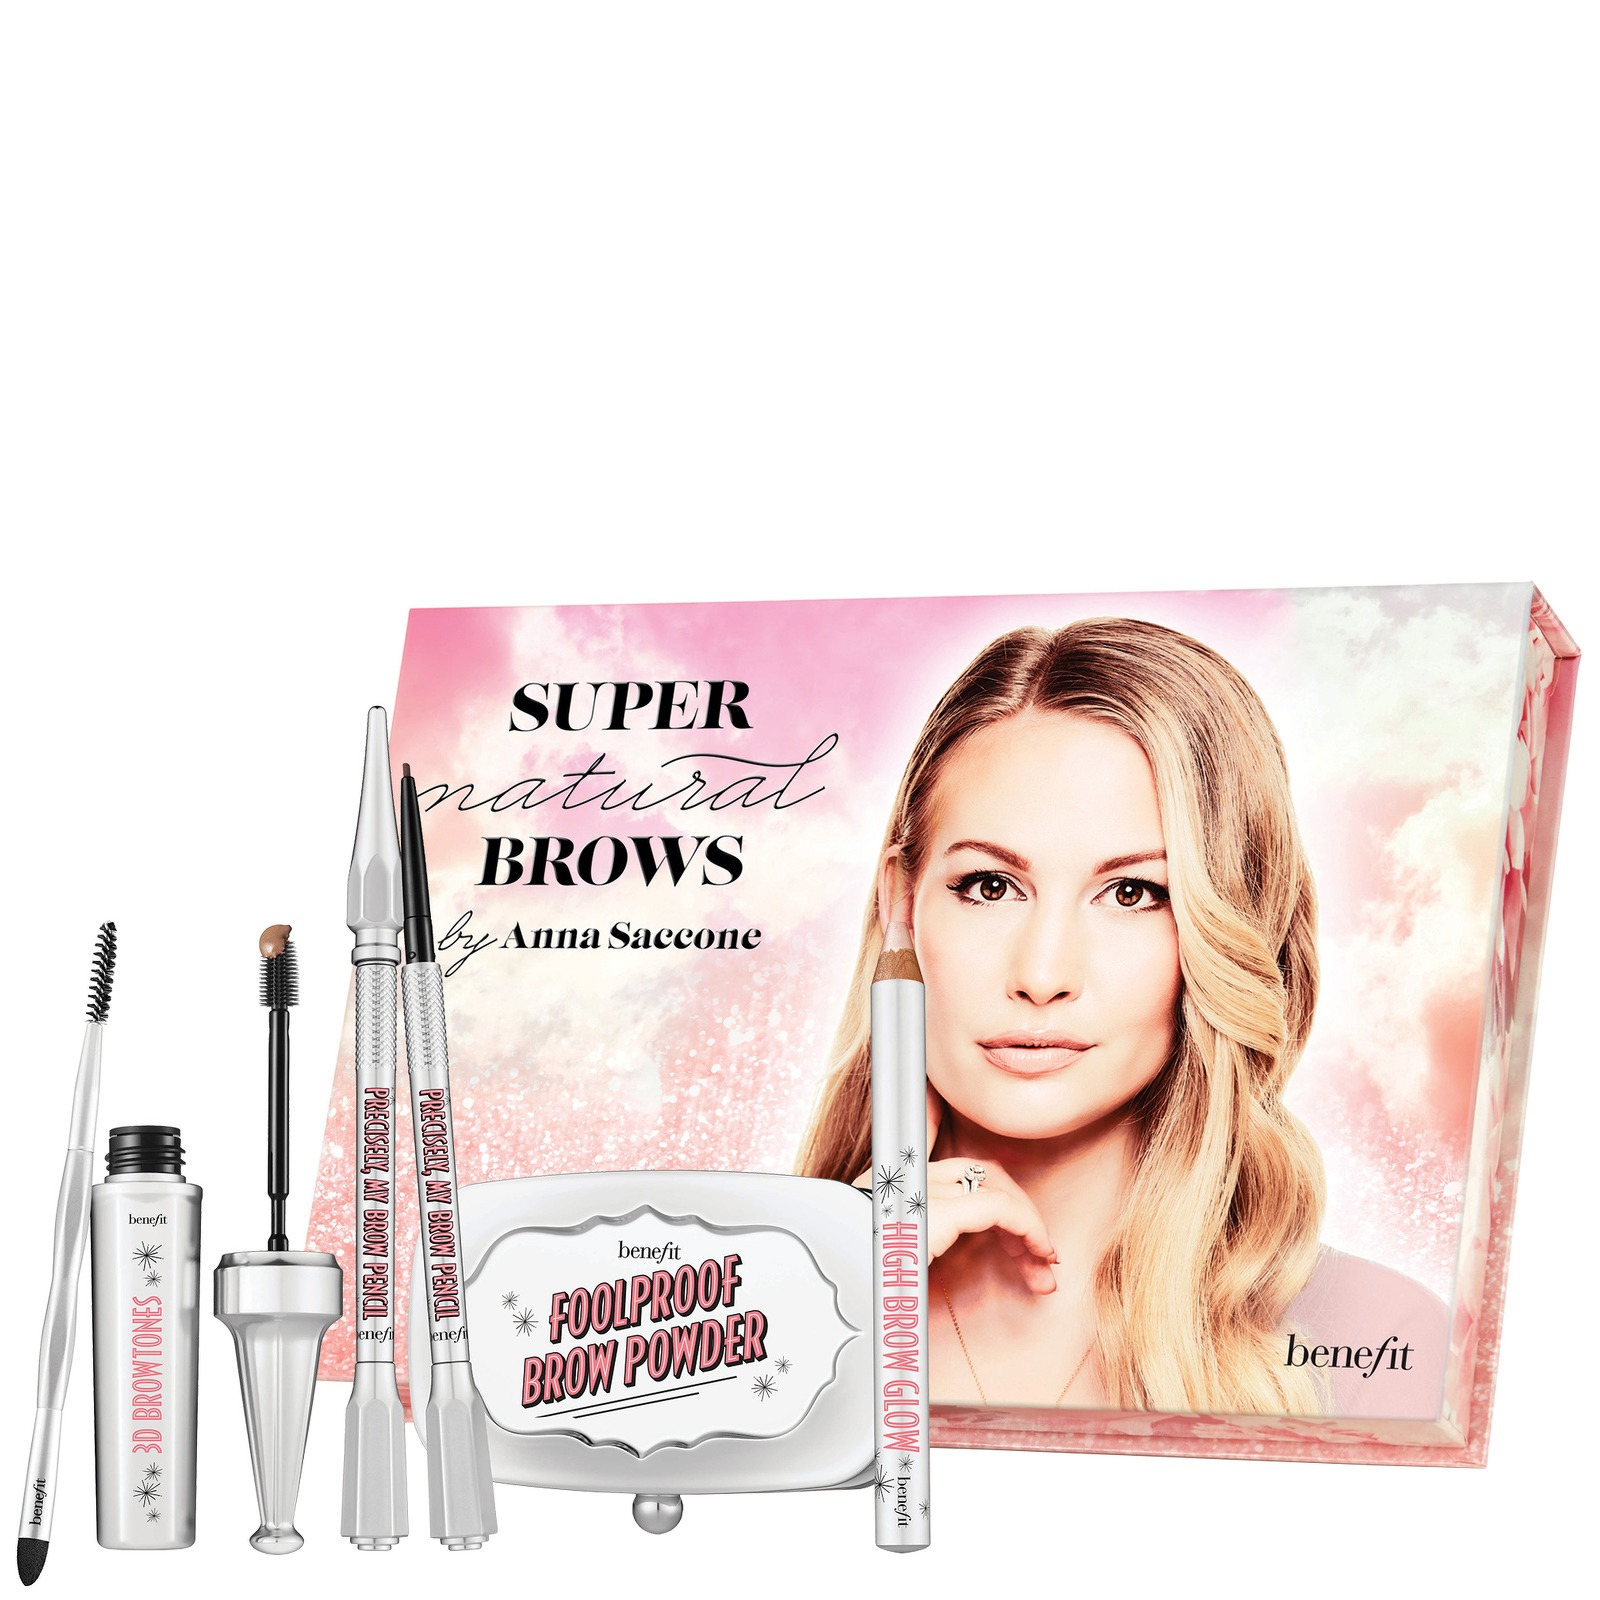 benefit Gifts & Sets Super Natural Brows by Anna Saccone (Worth £117.00)